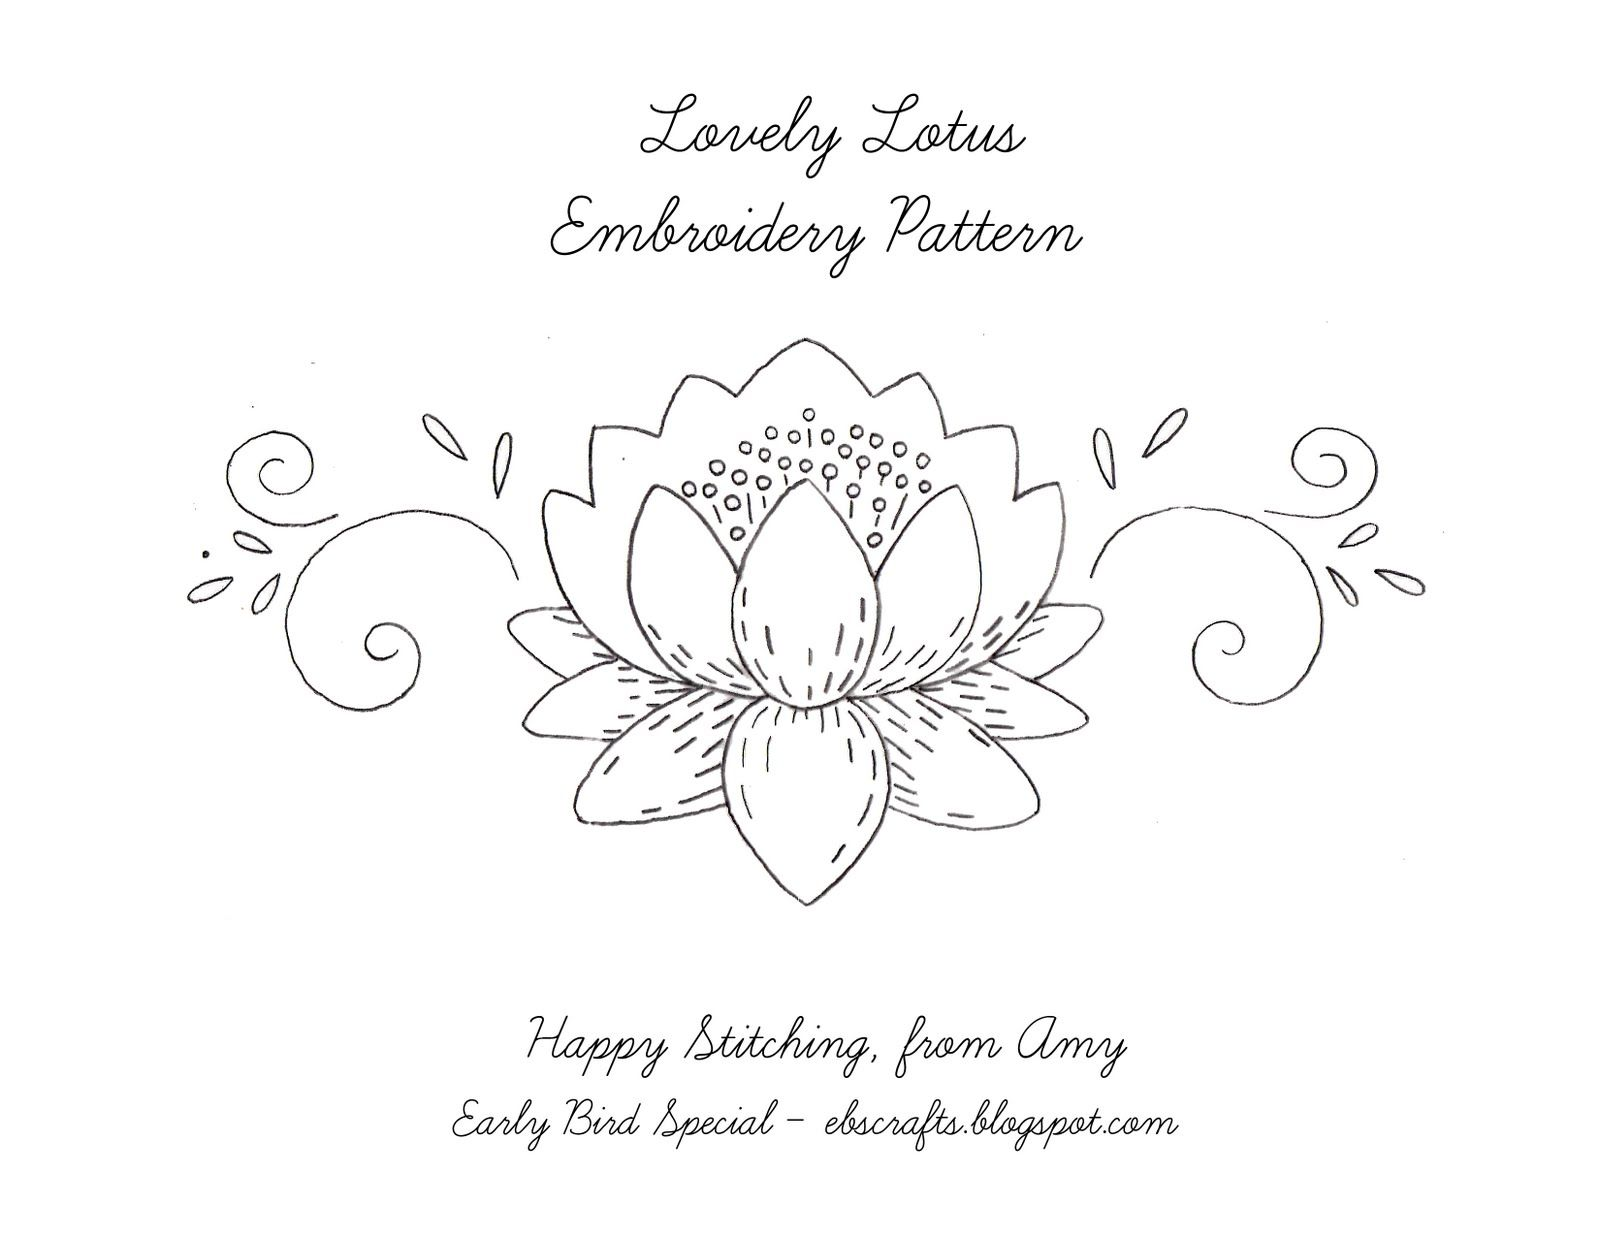 Embroidery Patterns Free Interesting Design